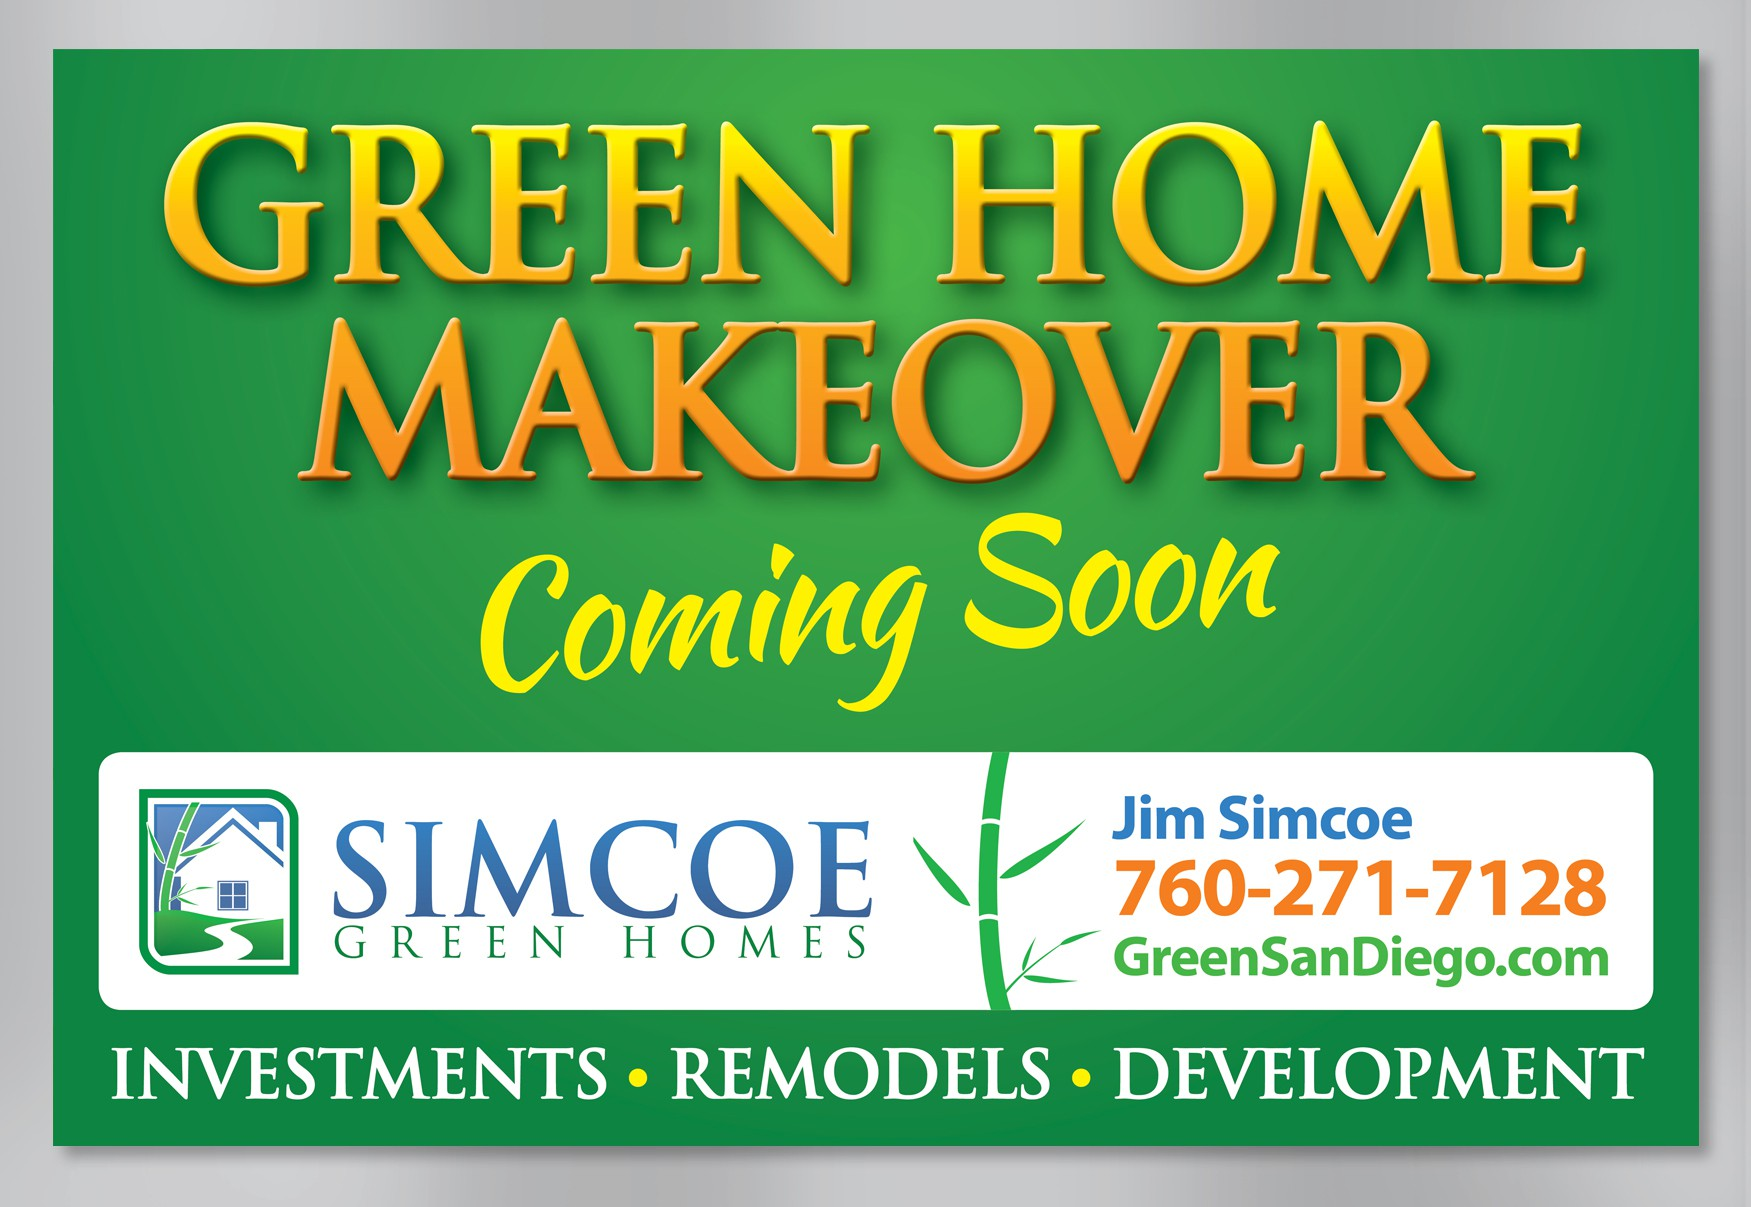 Create the next signage for Simcoe Green Homes